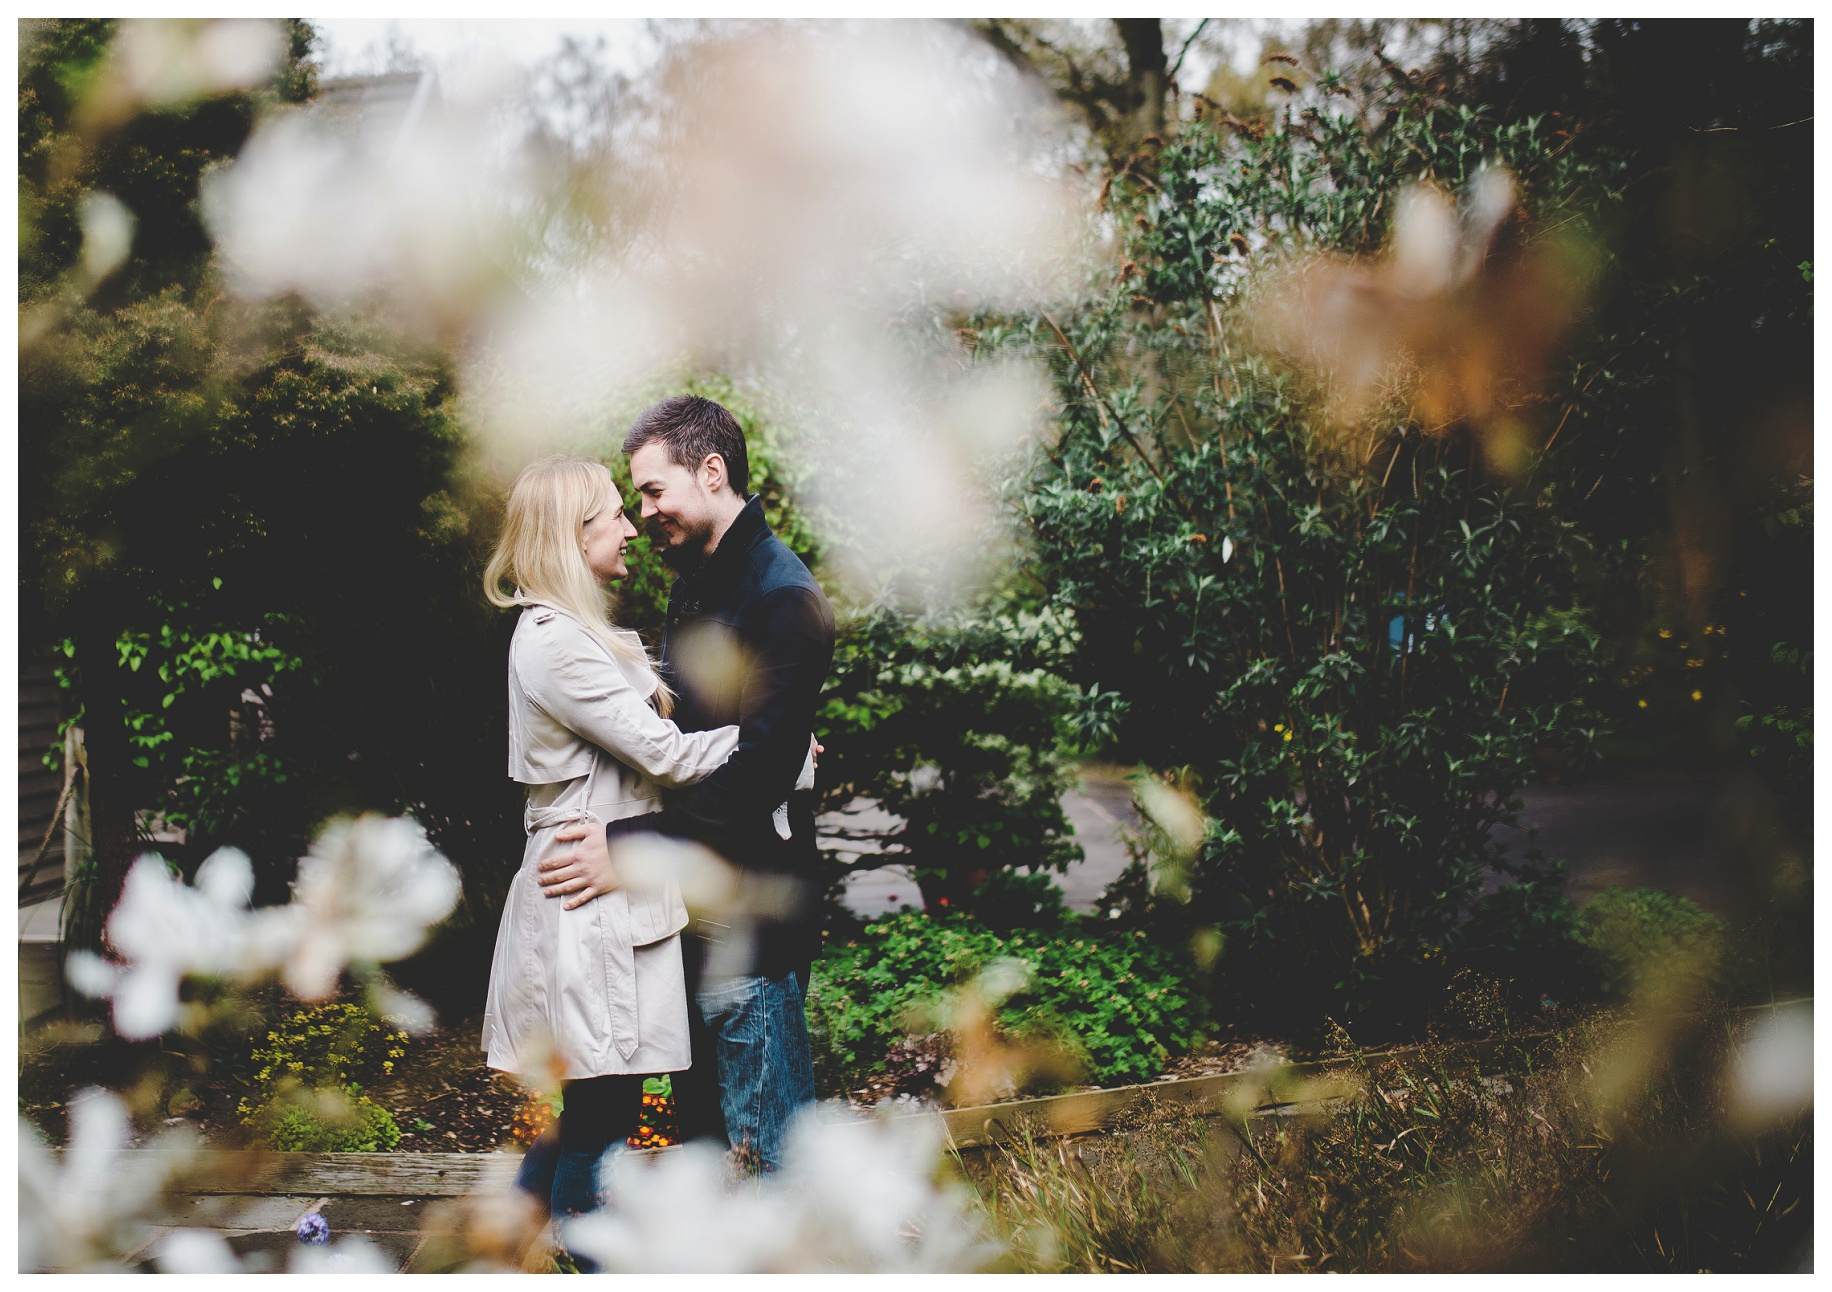 Cheshire wedding photographer - pre wedding photoshoot - The Oaktree of Peover (8)